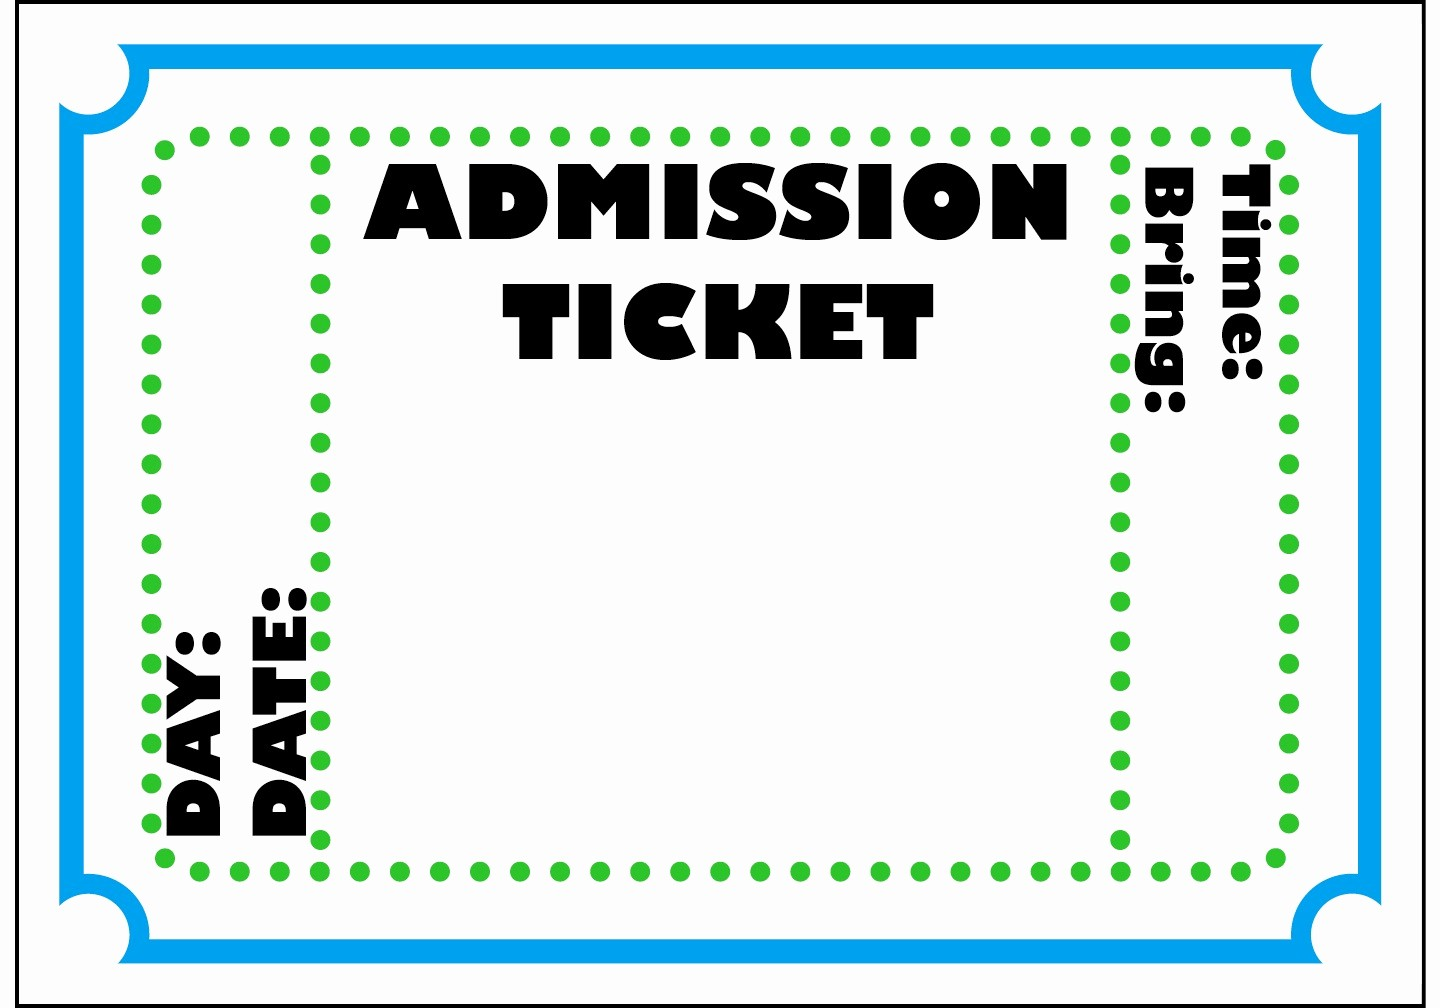 Blank Admit One Ticket Template Unique Admit E Ticket Template Example Mughals